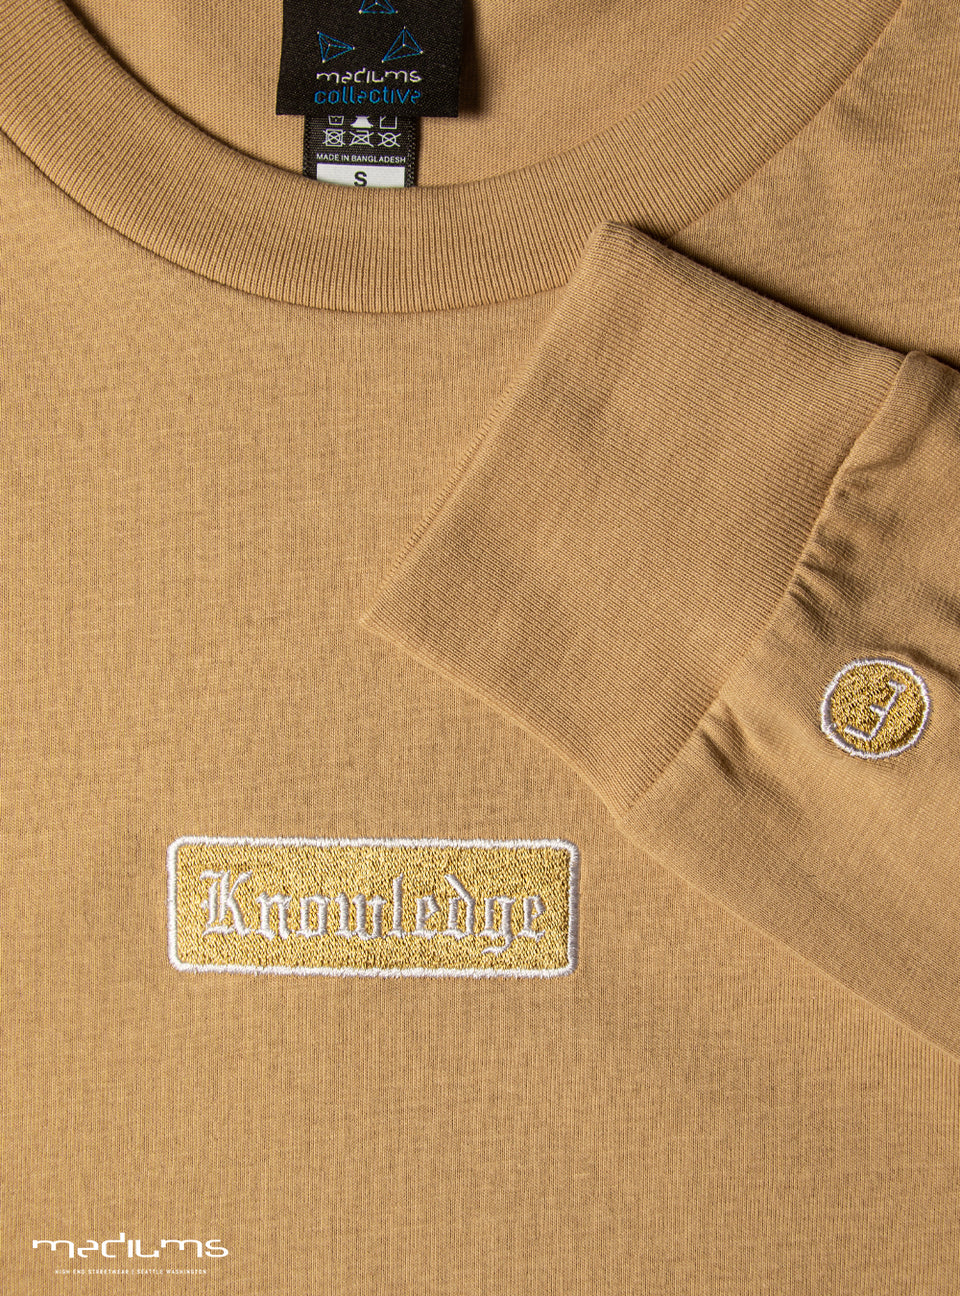 long sleeve, brown, latte, tshirt, spring collection, chess not checkers, premium, cotton, mediums, mediumscollective, designer shirts, streetwear, urbanwear, hiphop fashion, hustle tshirt, old english font, gold,  nipsey hussle